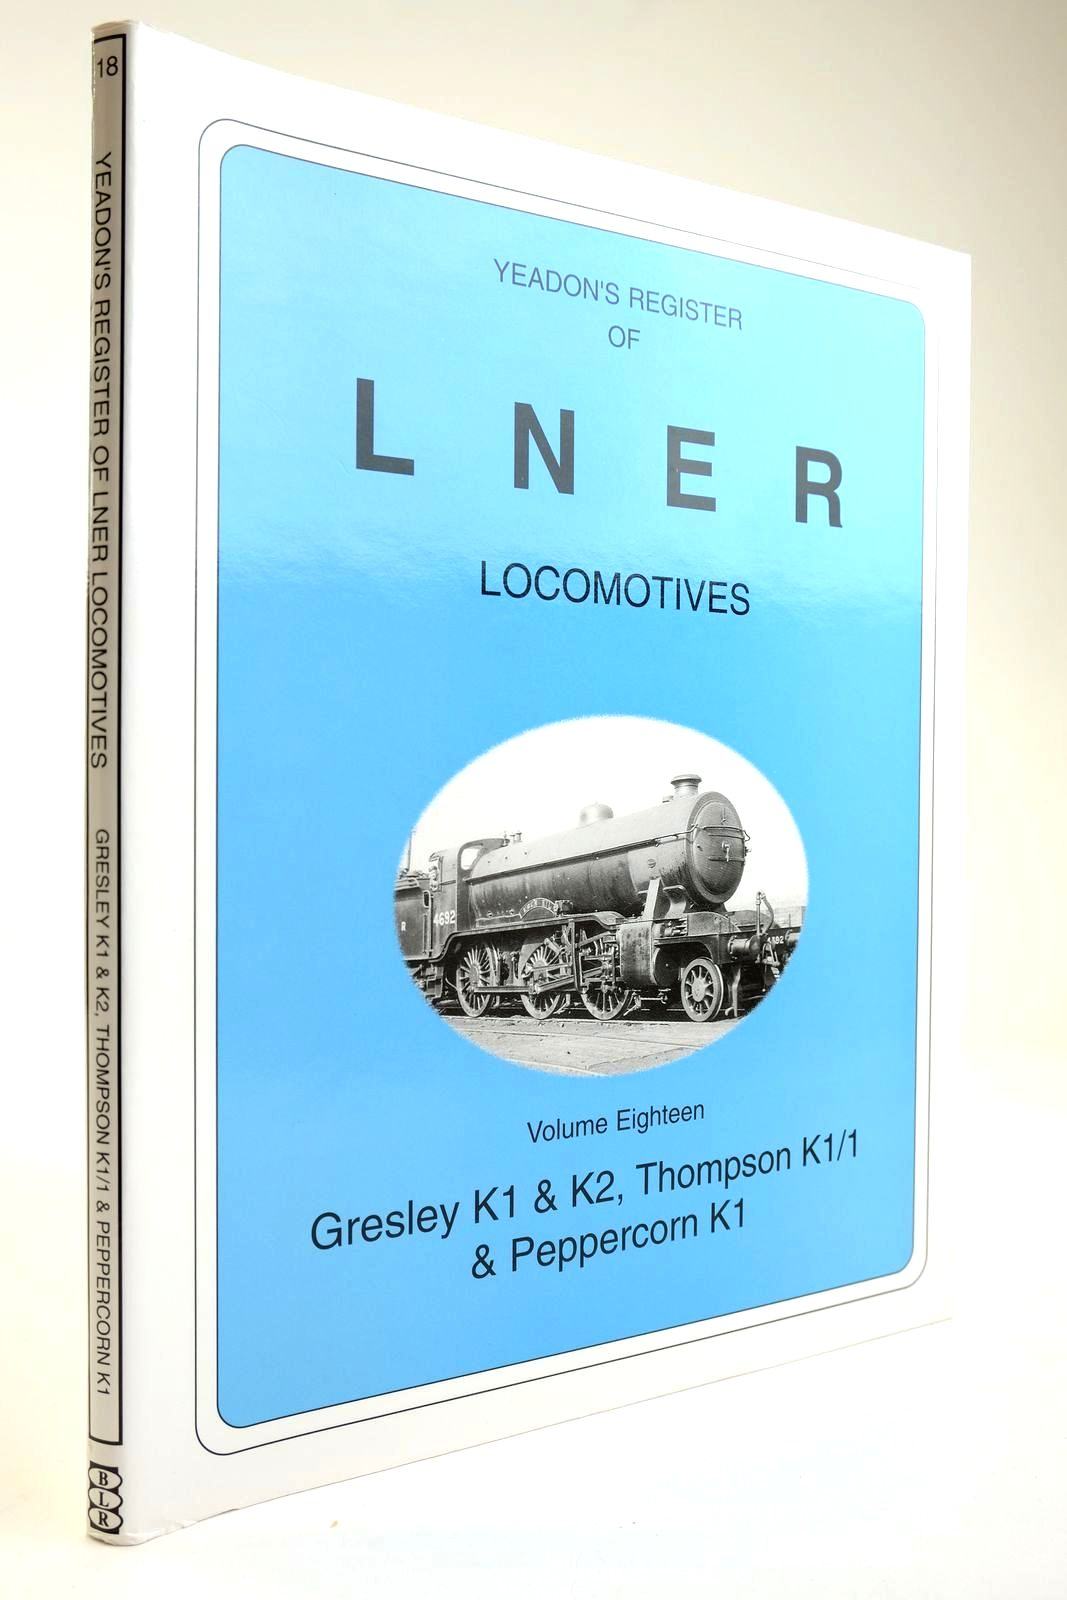 Photo of YEADON'S REGISTER OF LNER LOCOMOTIVES VOLUME EIGHTEEN written by Yeadon, W.B. published by Booklaw Railbus, Challenger Publications (STOCK CODE: 2133576)  for sale by Stella & Rose's Books